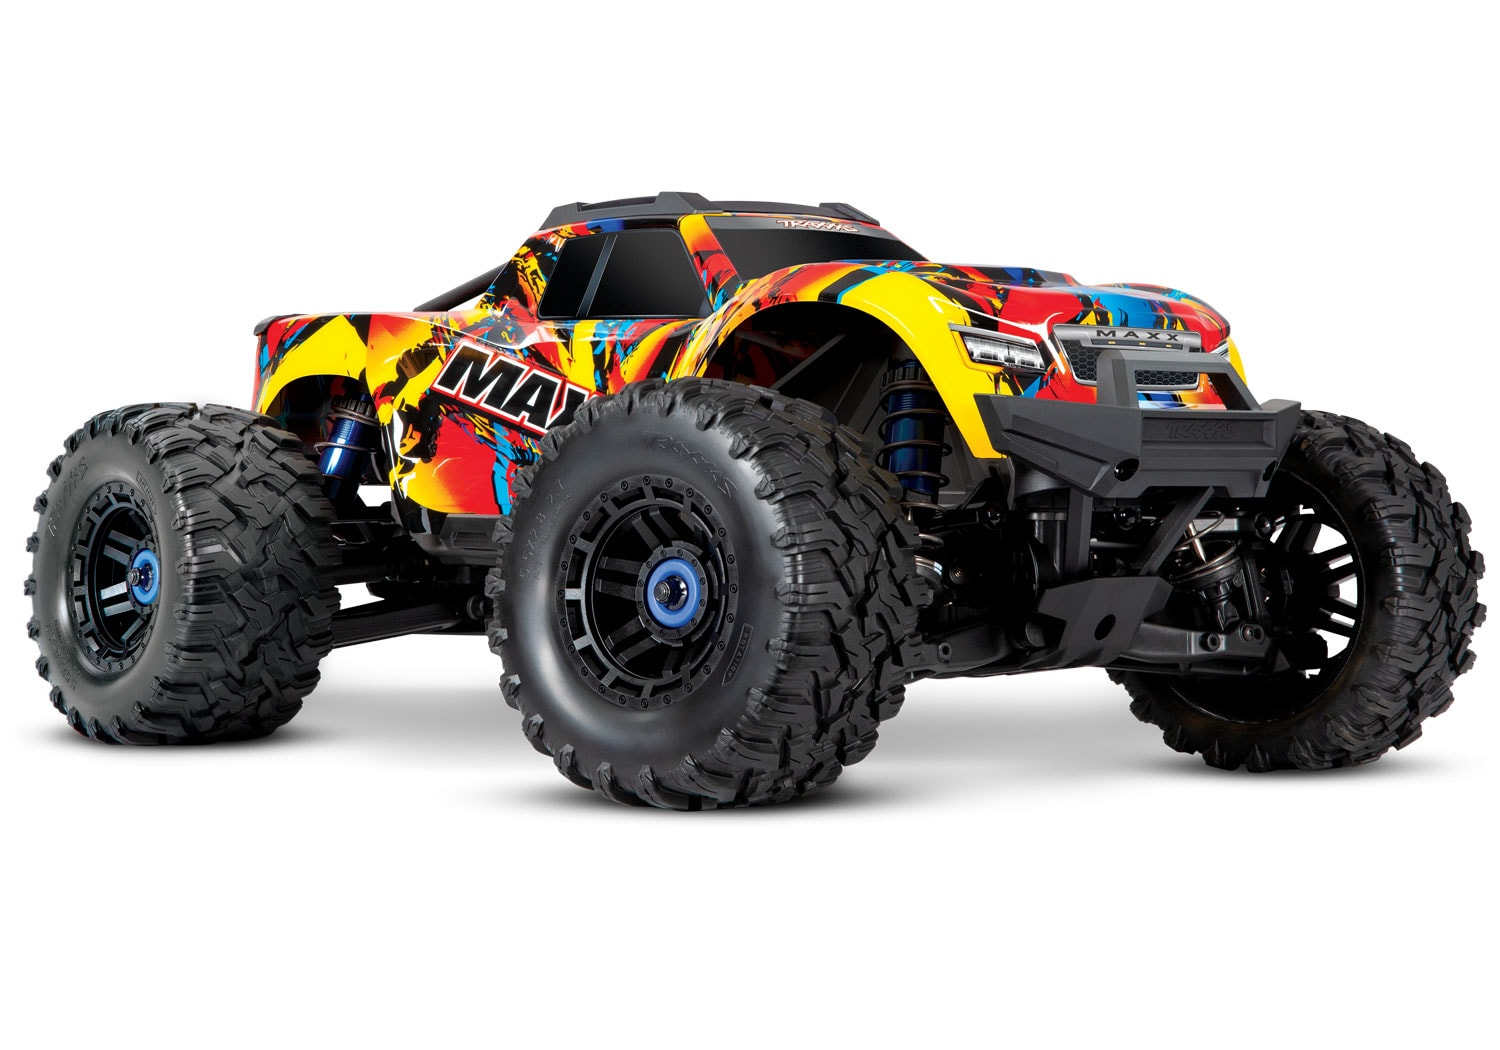 Traxxas Introduces a New Color Option for the Maxx; Solar Flare